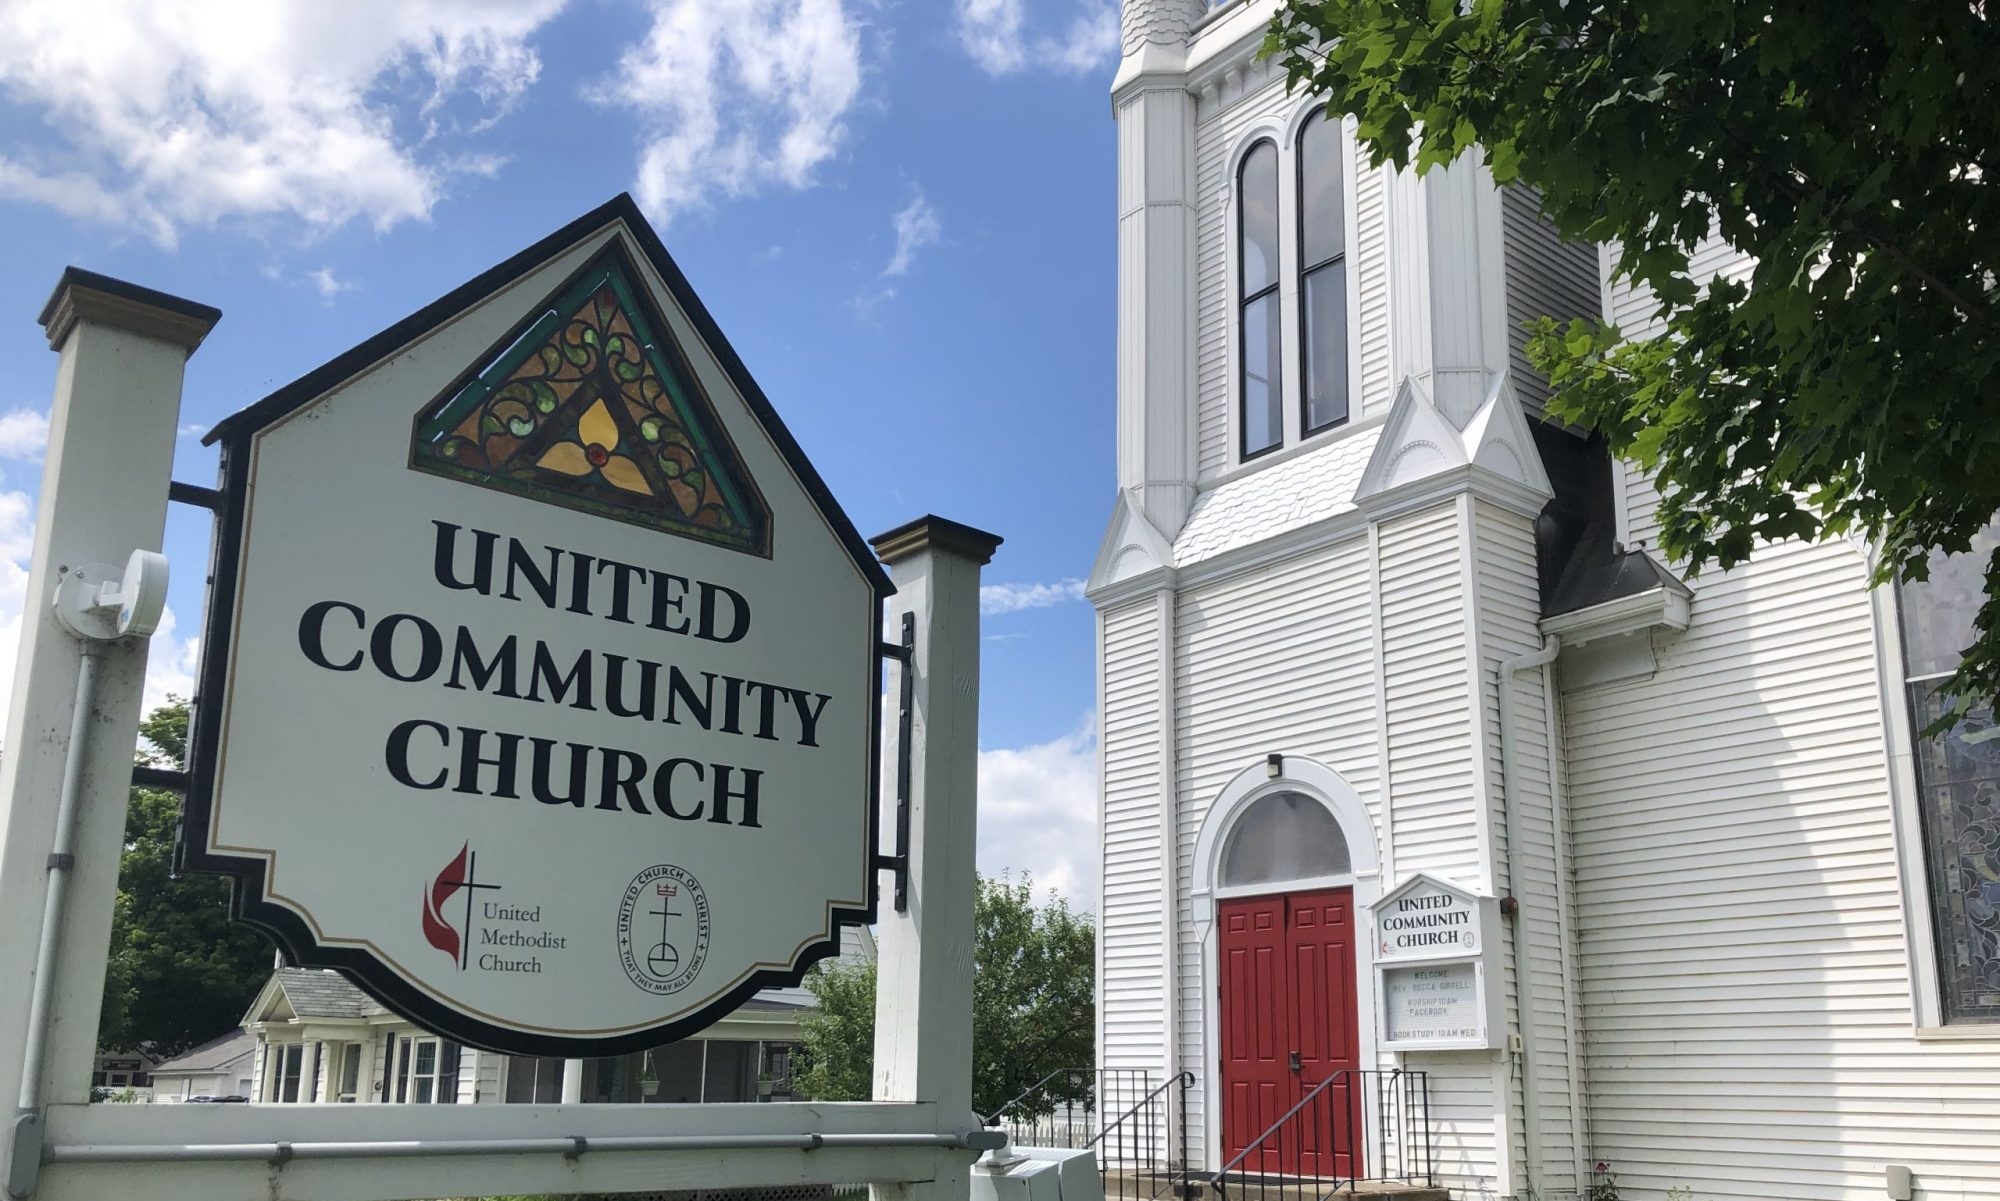 United Community Church of Morrisville